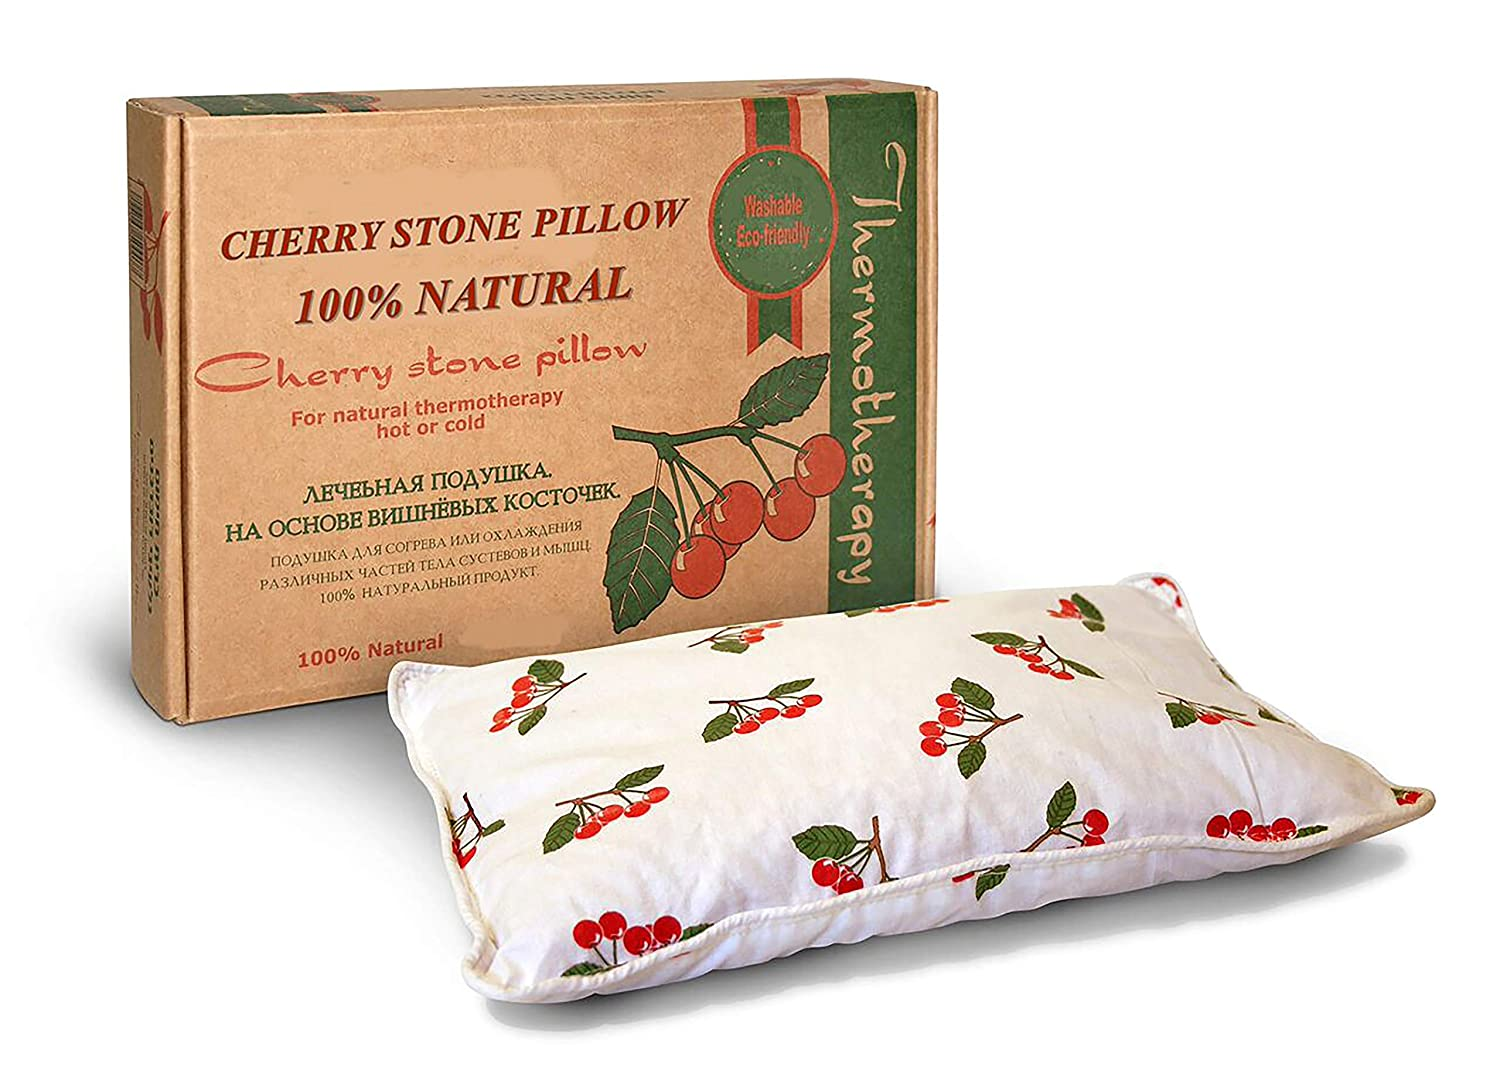 Organic CHERRY STONE PILLOW Hot or Cold Chaina